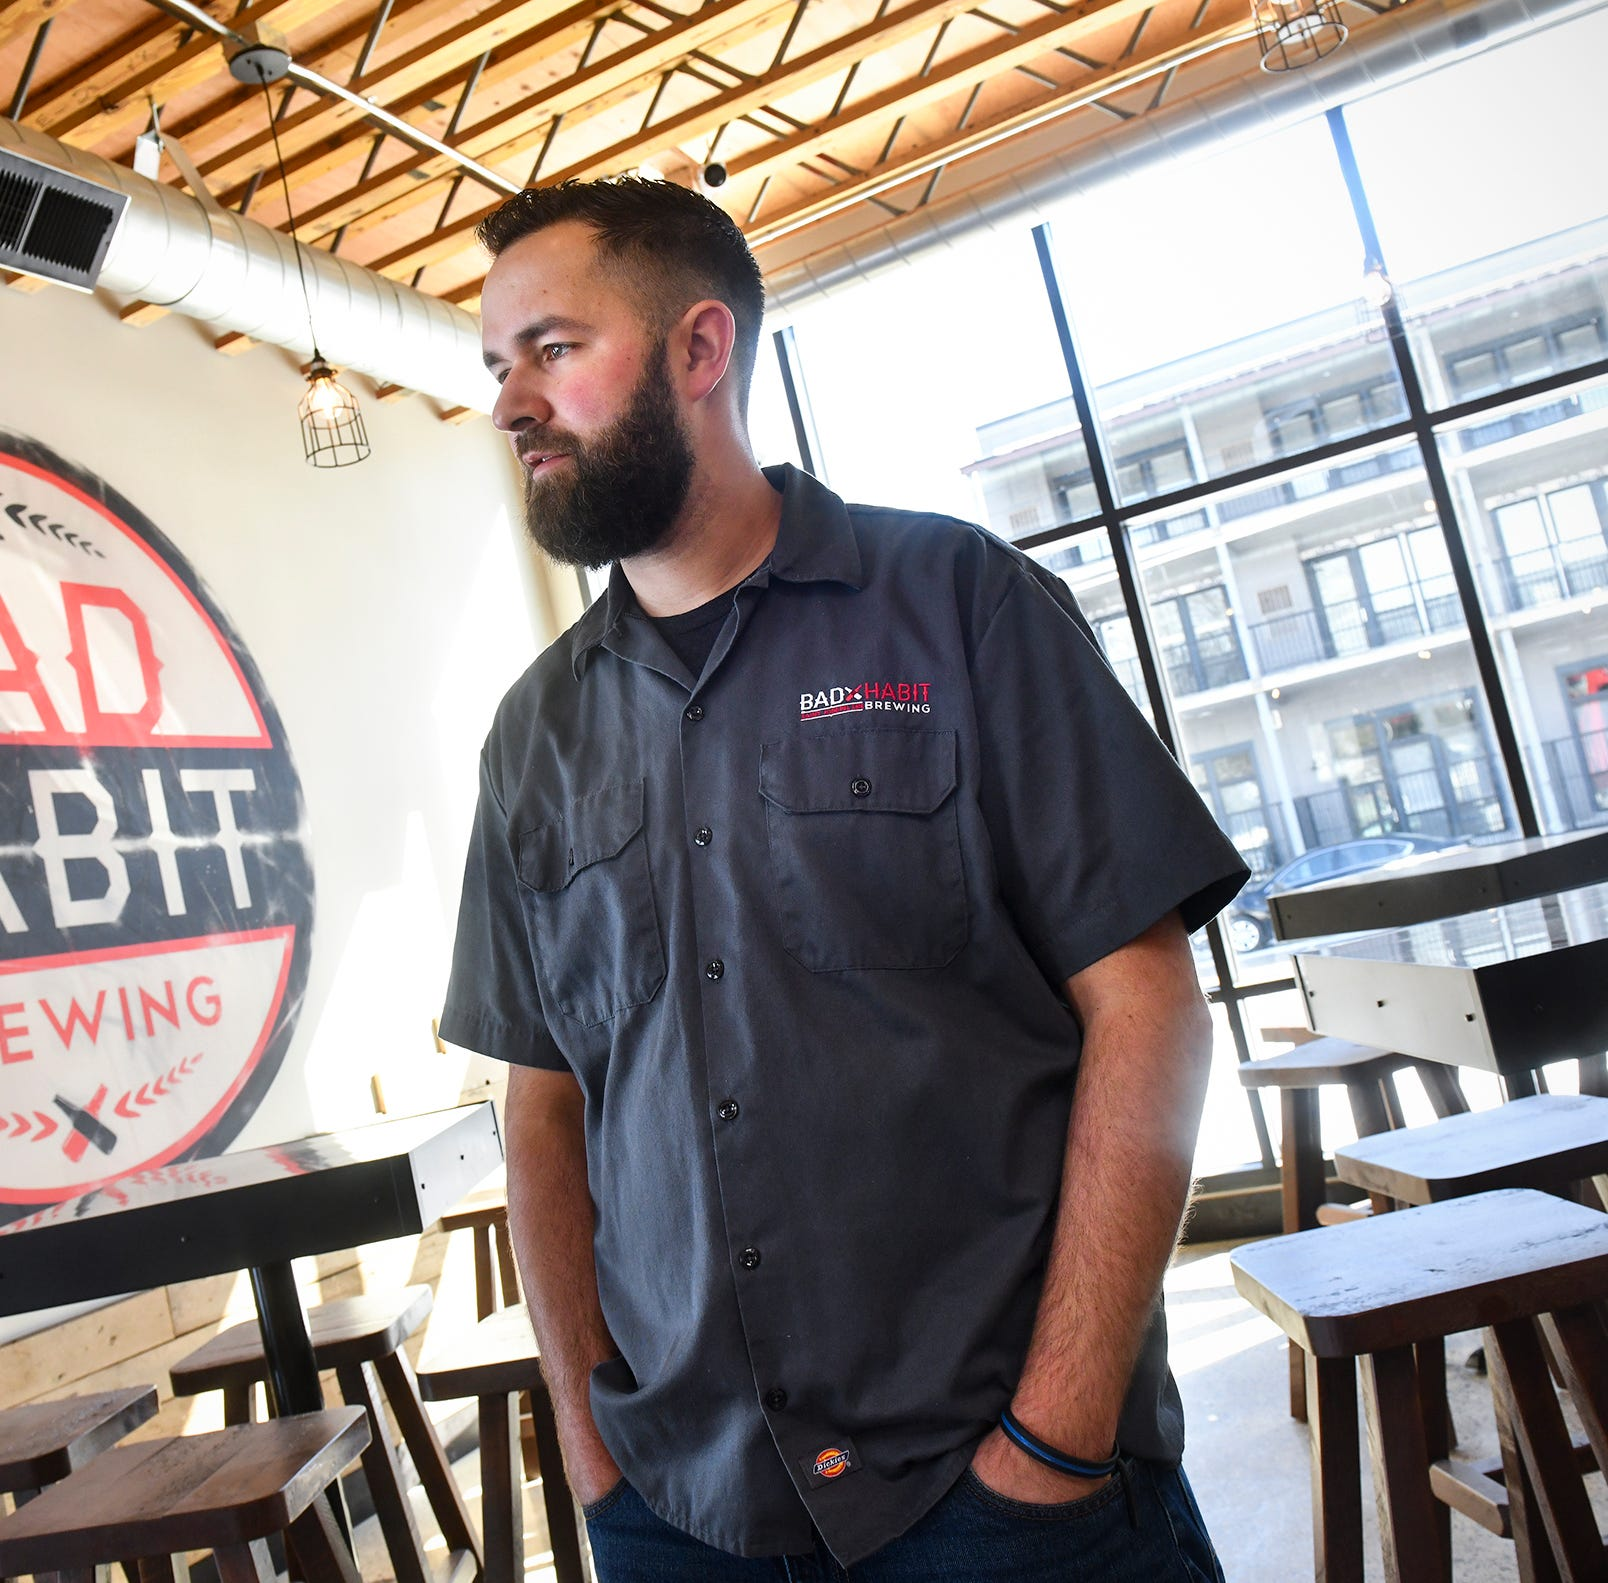 Sneak peek: Take a look at Bad Habit's big new brewery before its May 4 opening